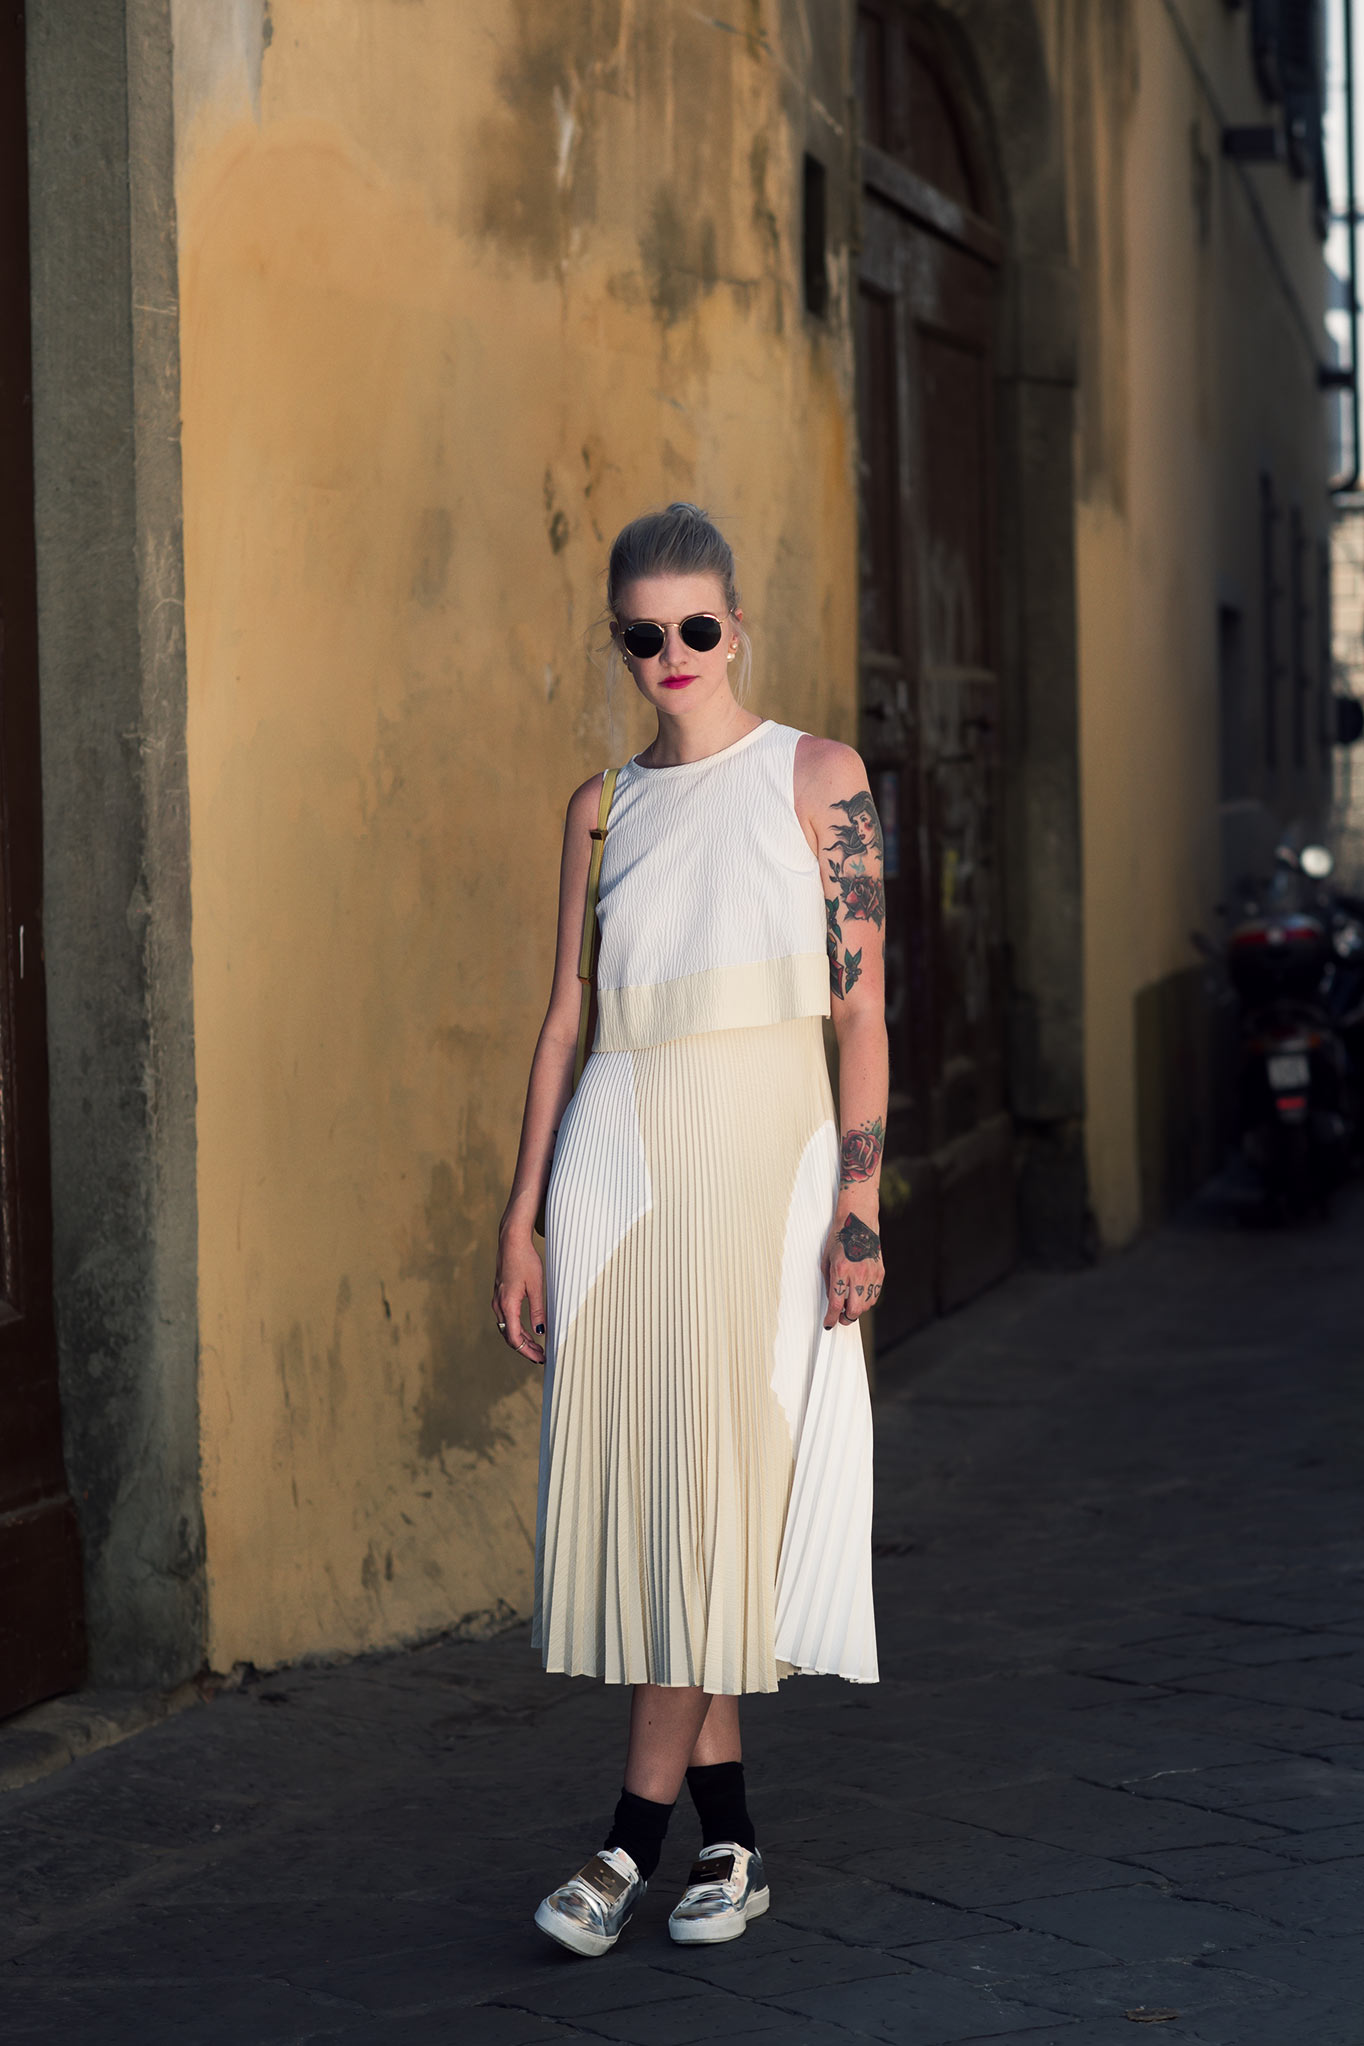 Marianne Theodorsen at Pitti Uomo 86